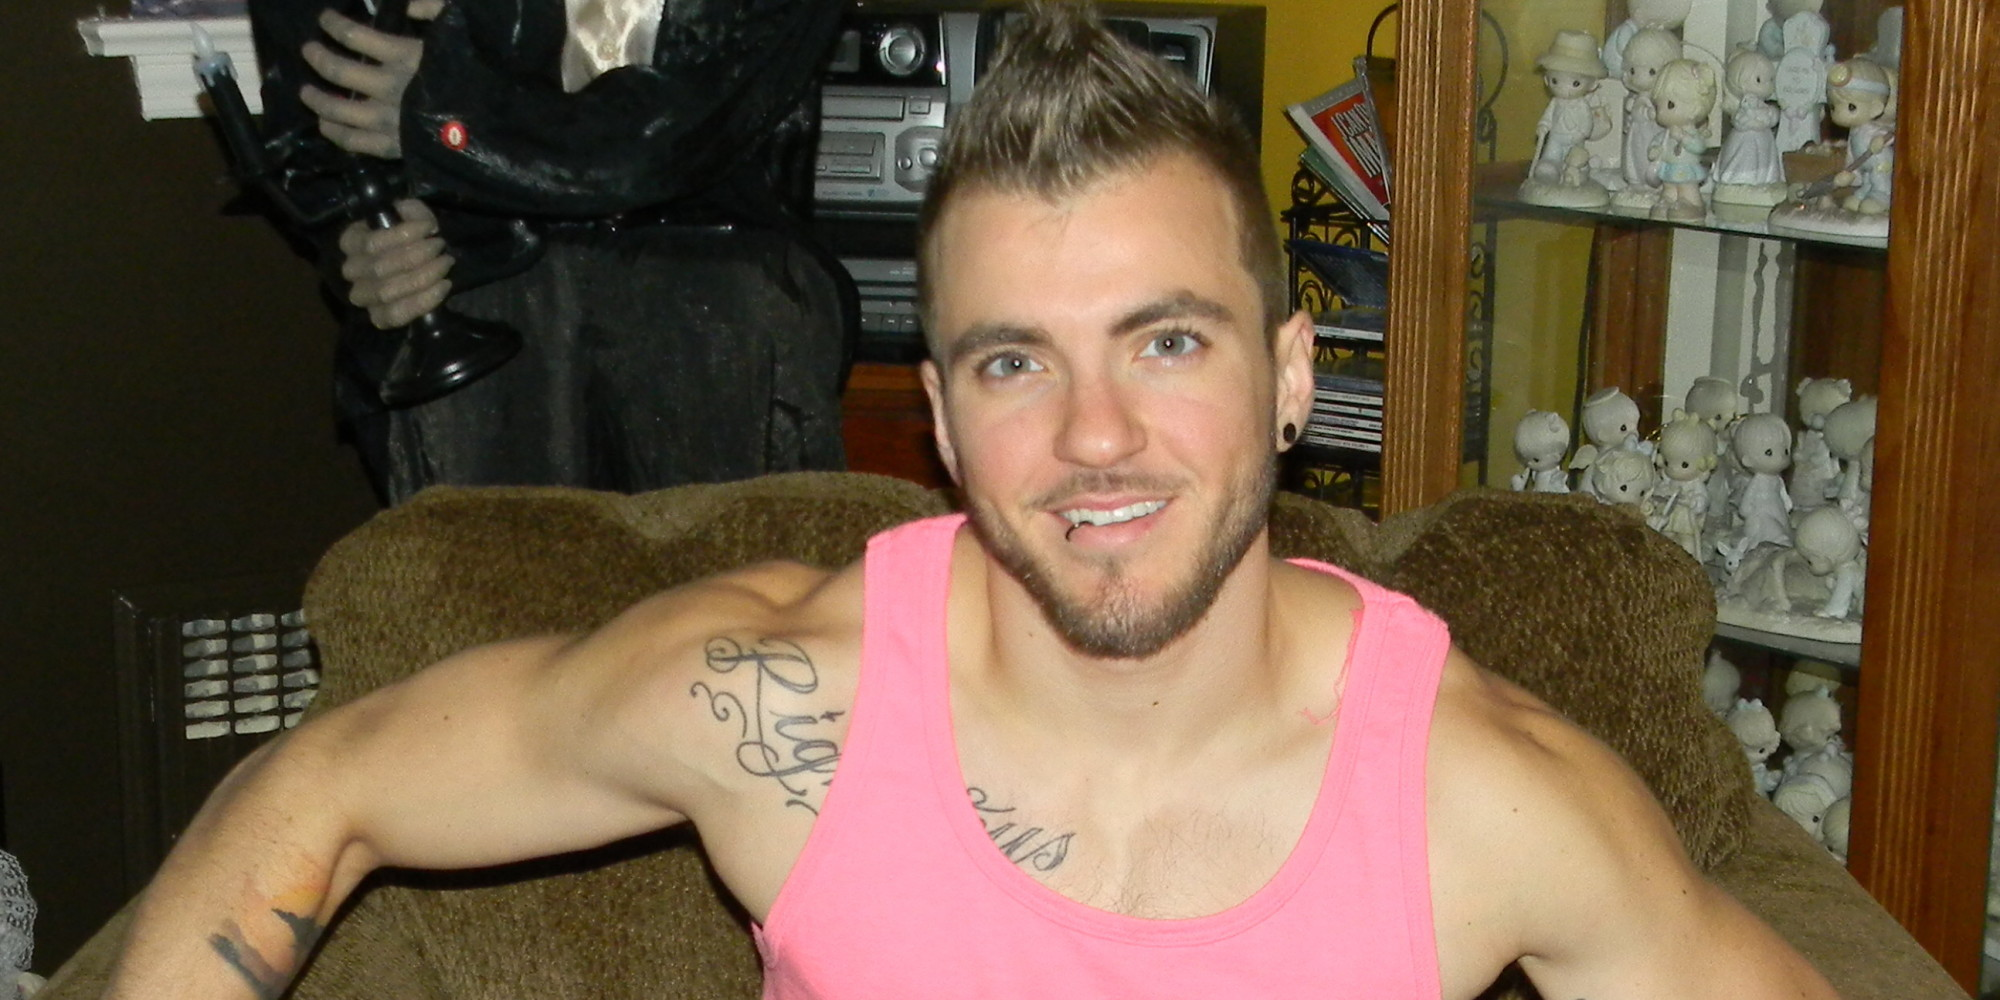 transman dating uk